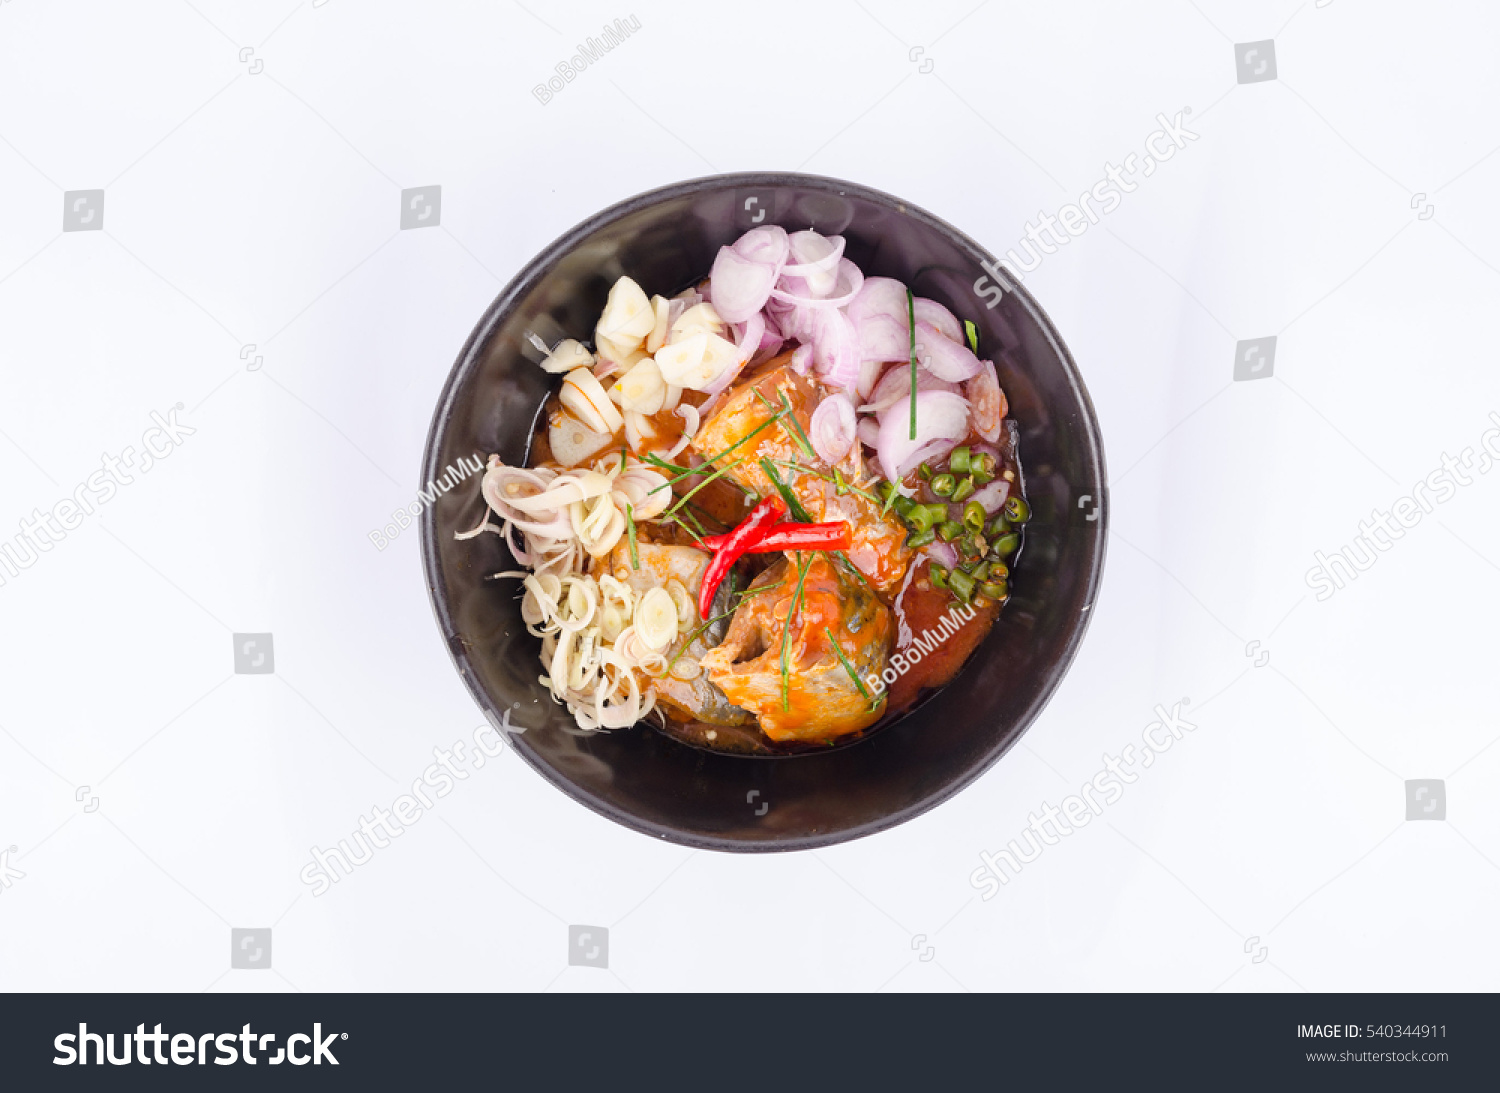 Sardine spicy salad easy thai food stock photo 540344911 shutterstock sardine spicy salad easy thai food dish forumfinder Gallery